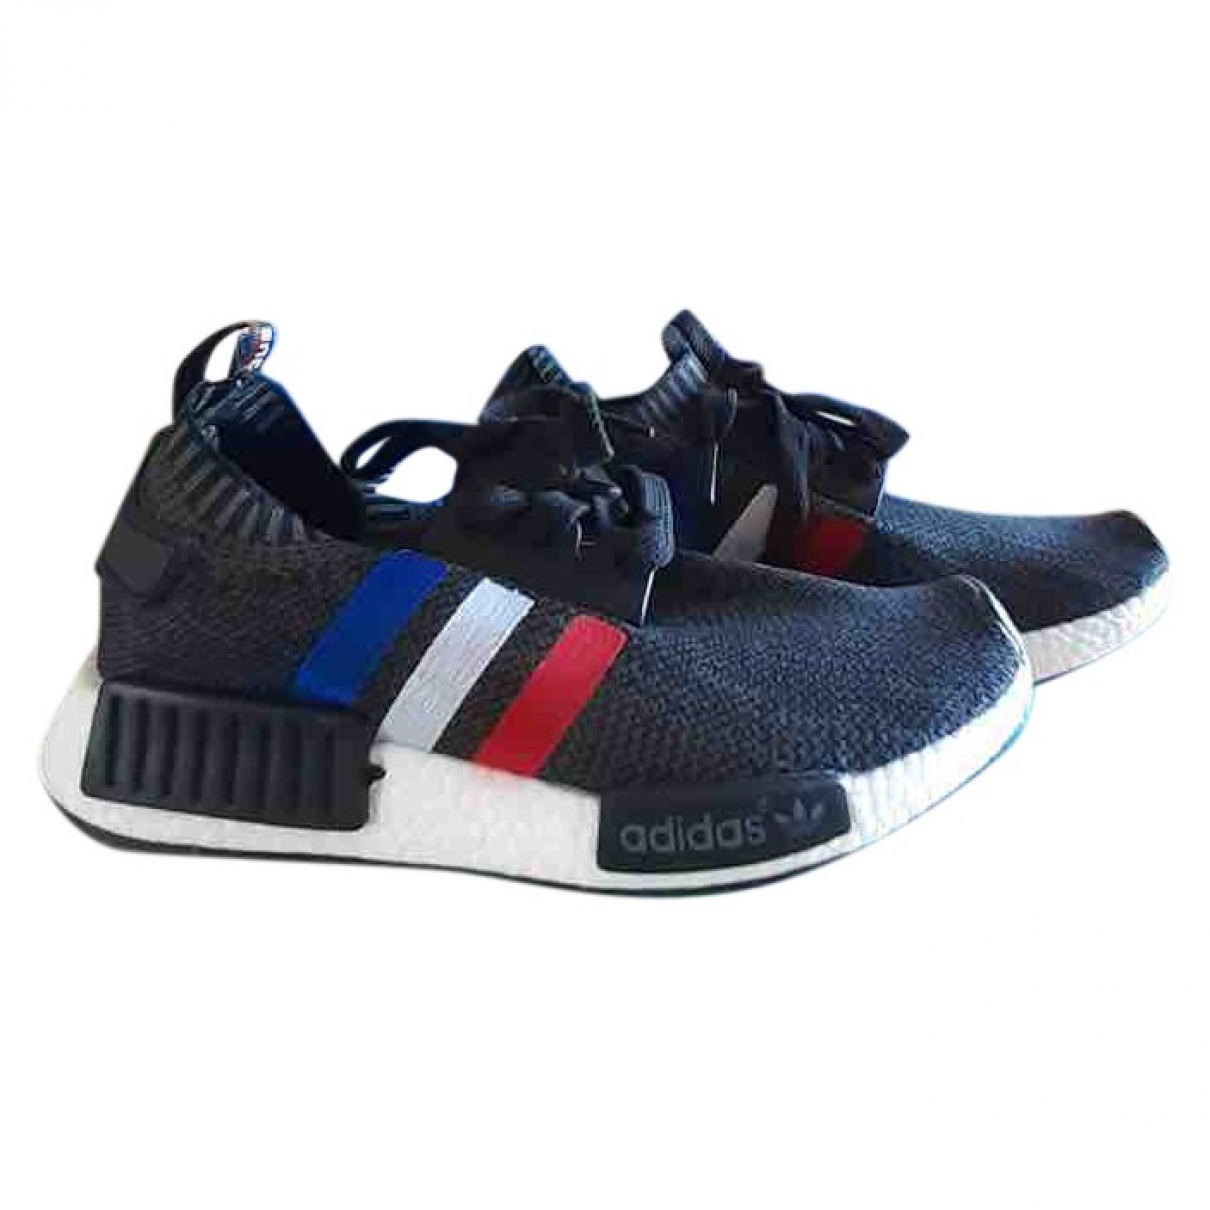 Adidas Nmd Sneakers in  Grau Polyester